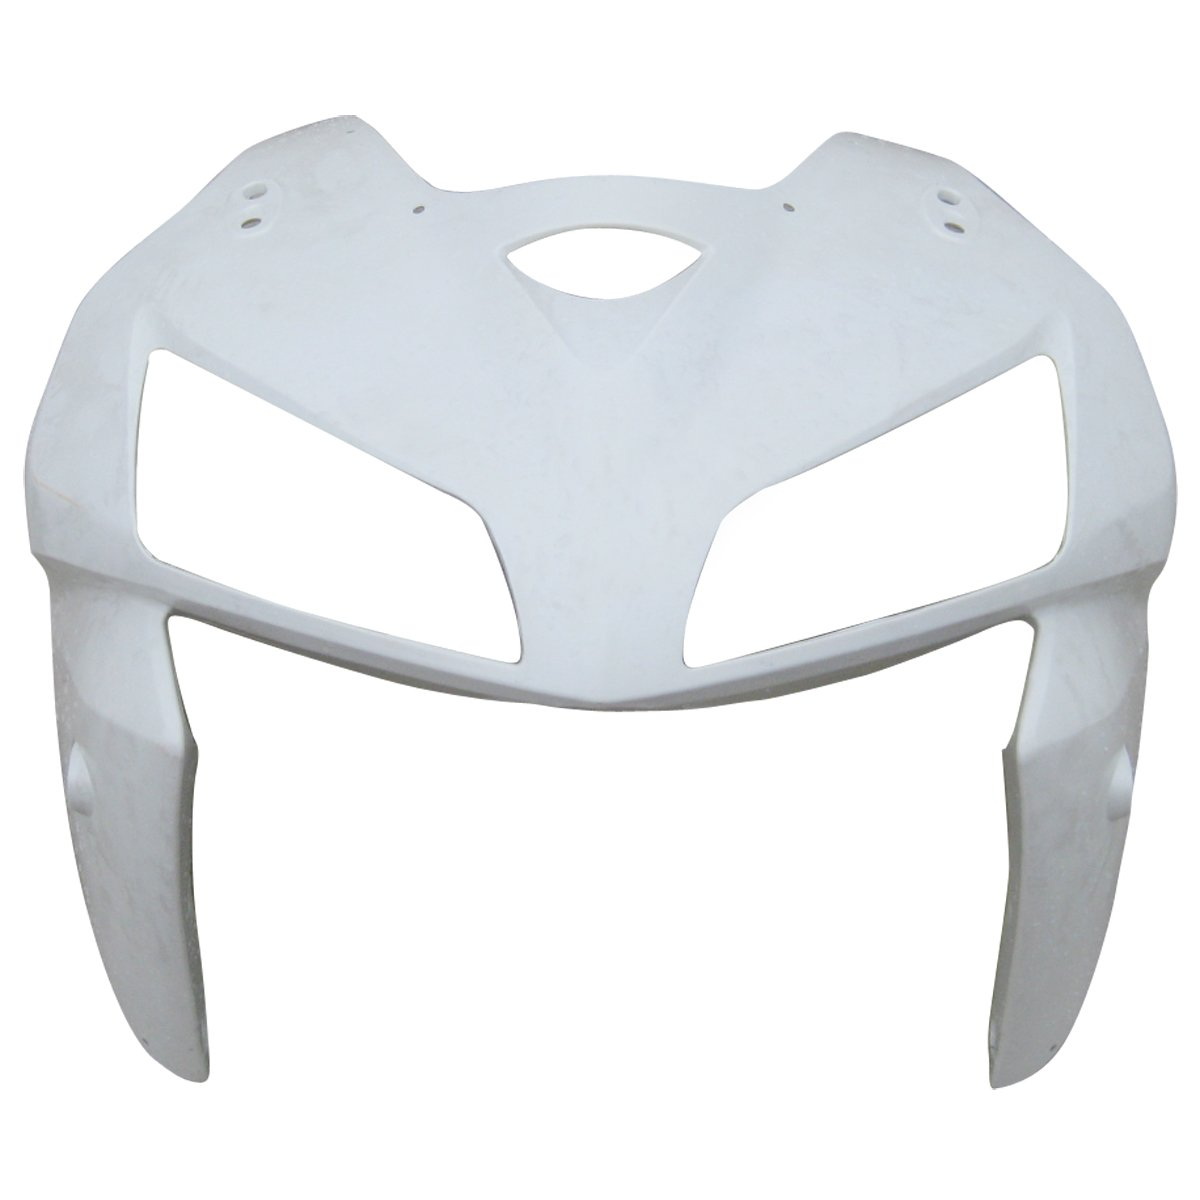 ZXMOTO Motorcycle Front Upper Cowl Nose and Upper Fairing Splash Guard Fairing cowl kit for Honda CBR 600 RR 2005 2006 Unpainted, ABS Injection